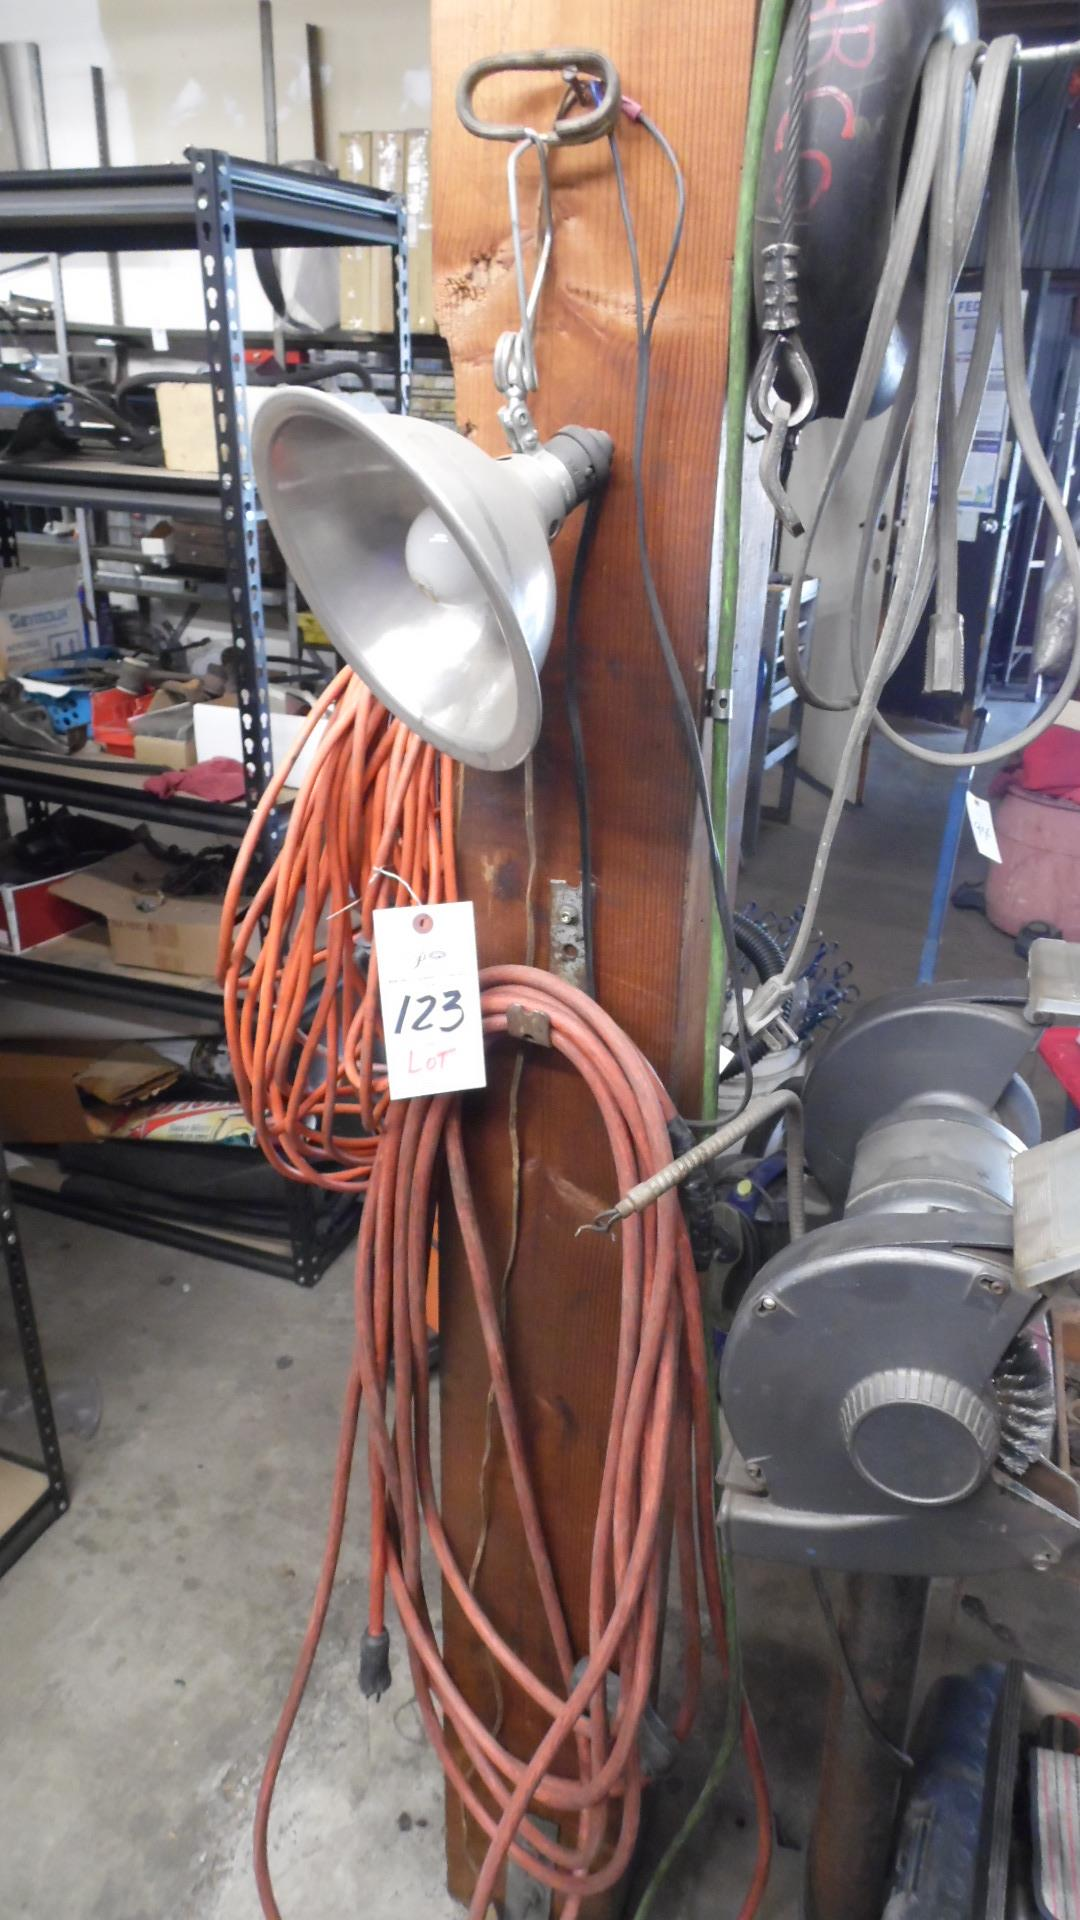 Lot 123 - WIRES / CORDS / CABLE